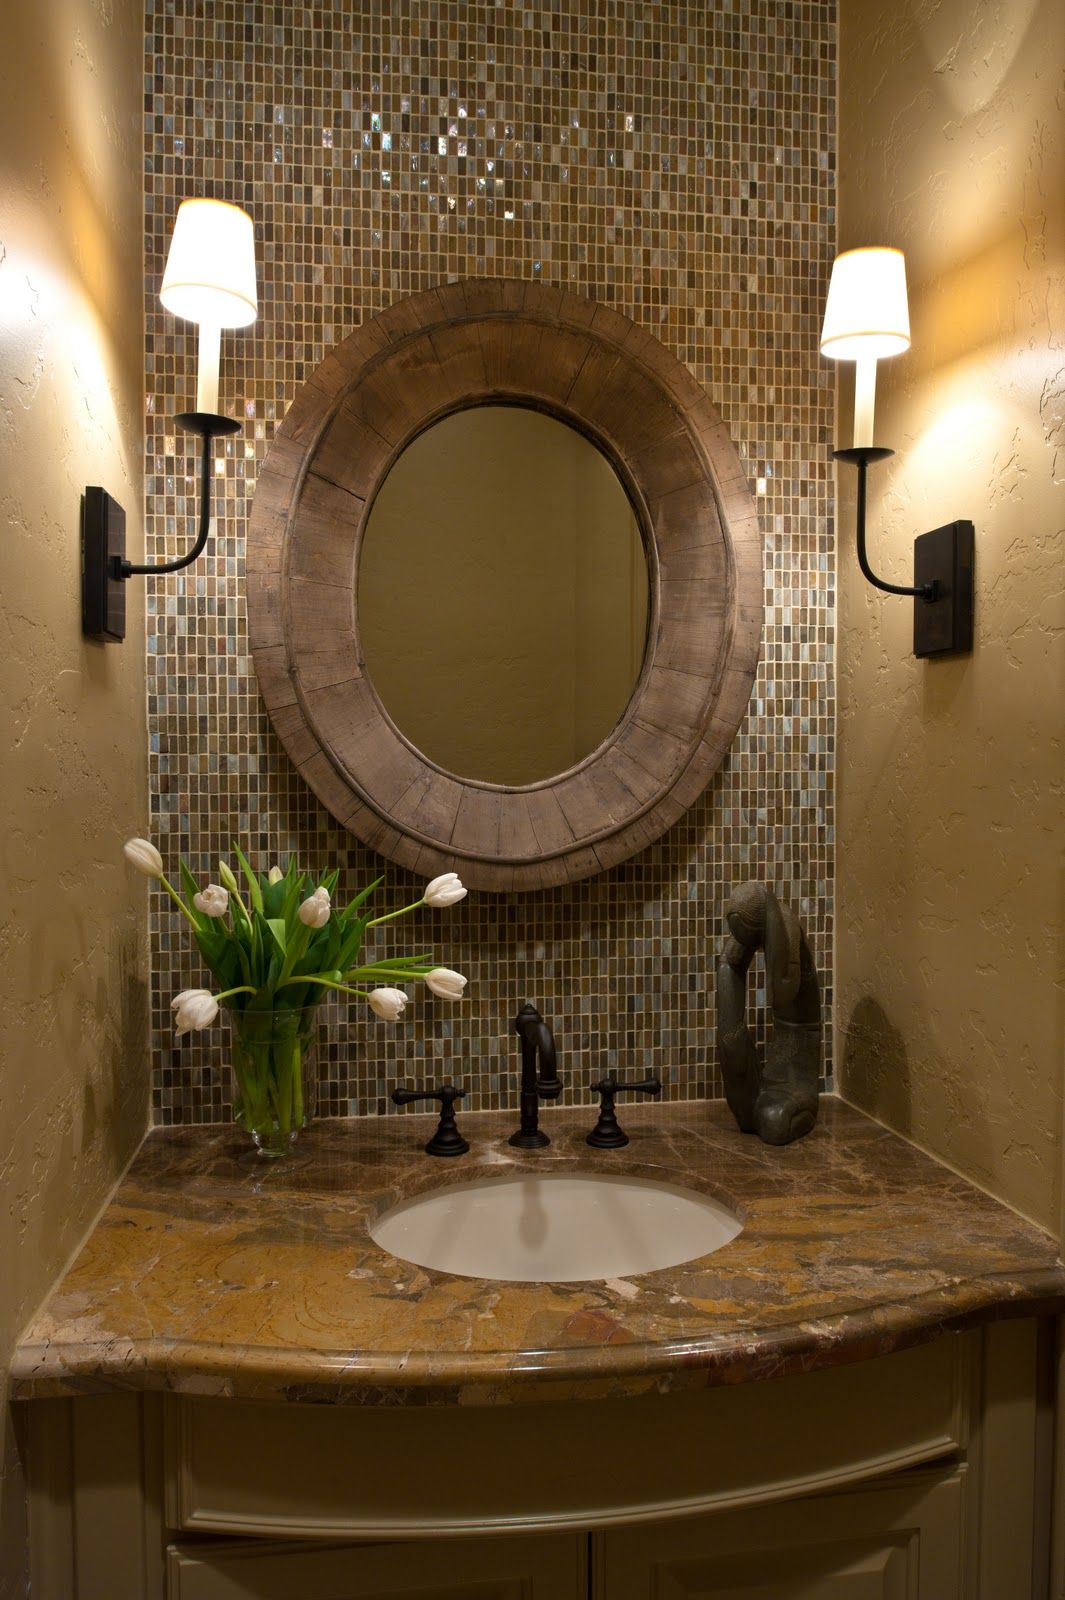 Powder Room Design Ideas gray powder room with seashell mirror Top 10 Bathroom Design Trends Guaranteed To Freshen Up Your Home